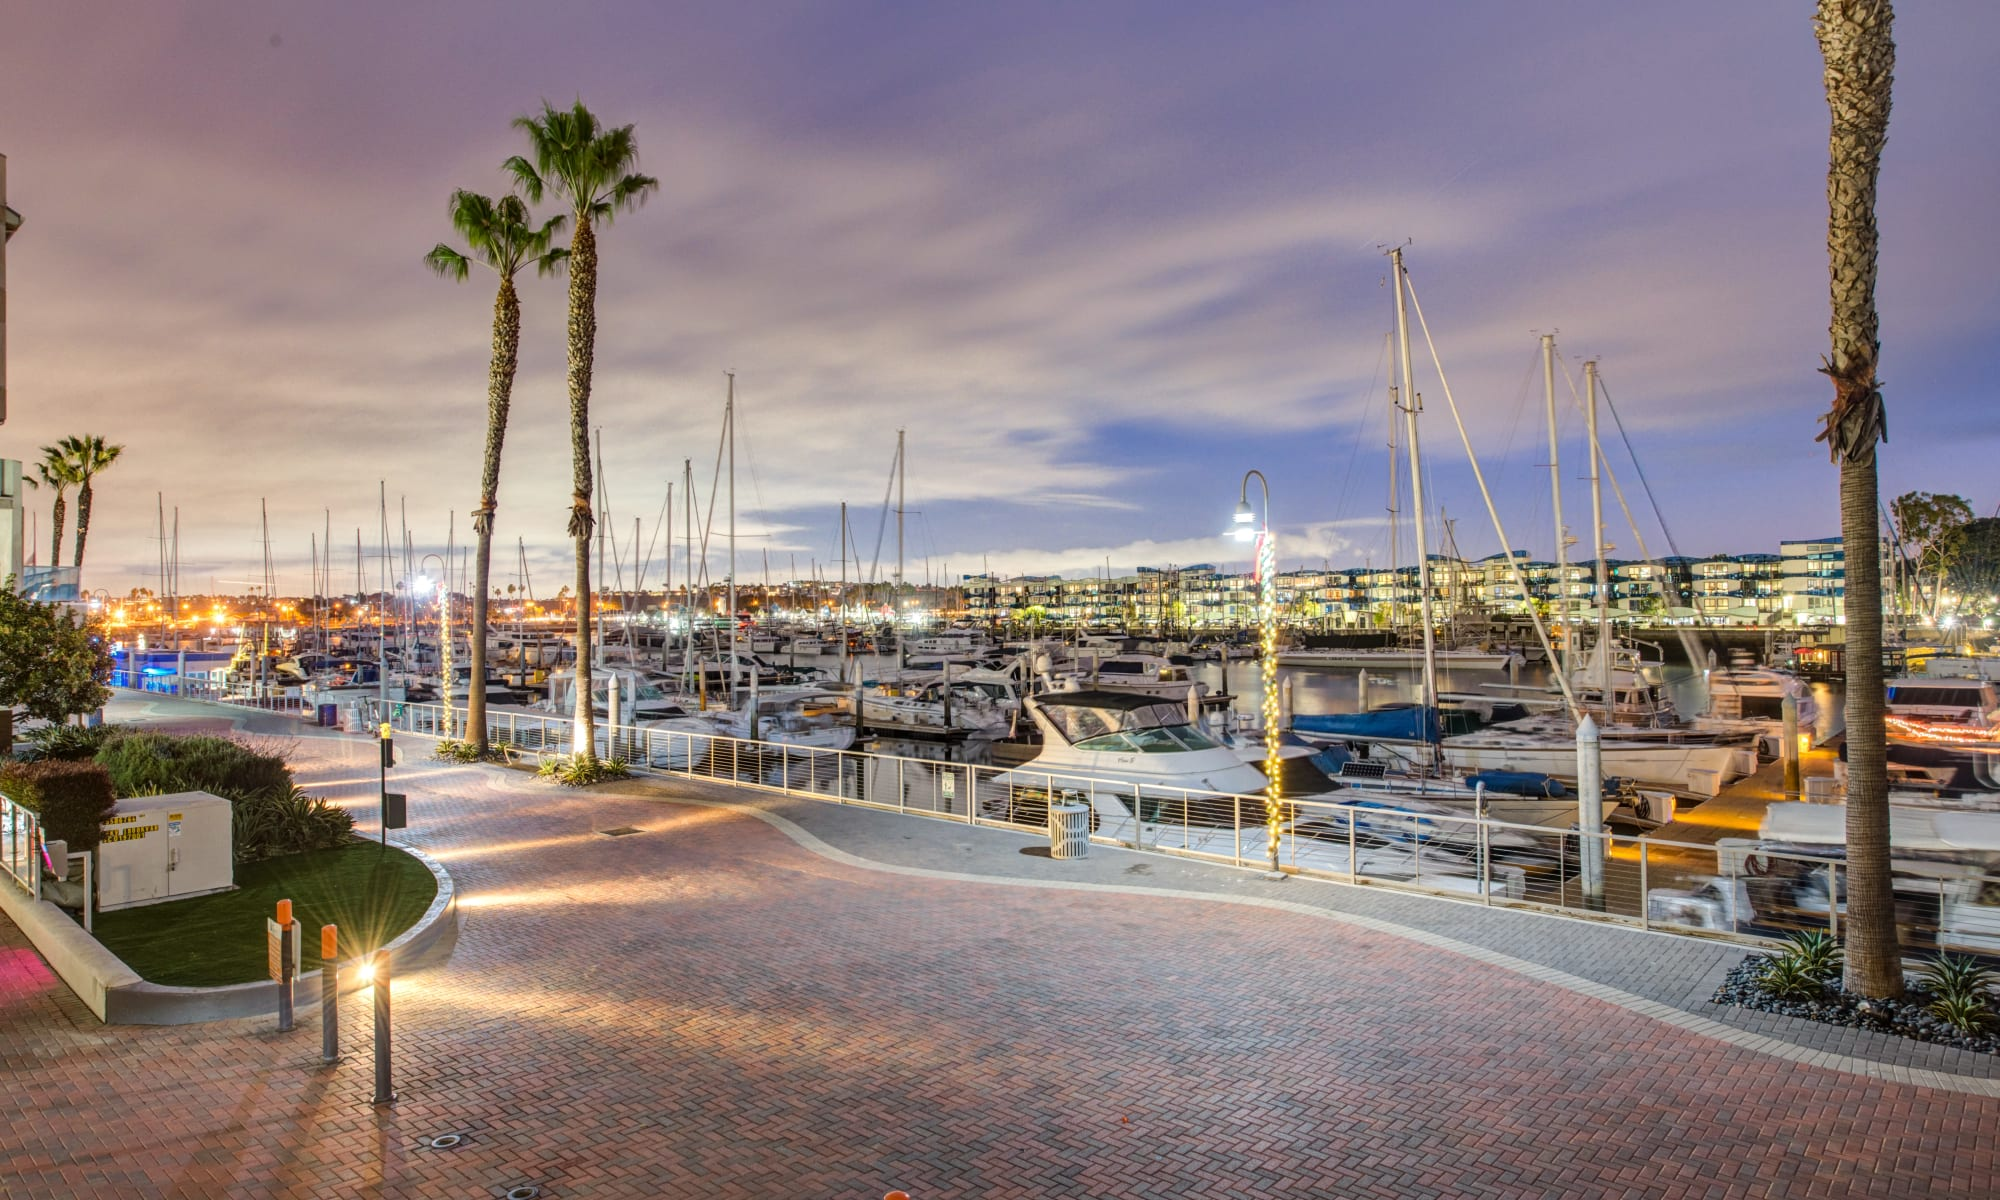 Beautiful skies at Esprit Marina del Rey in Marina Del Rey, California